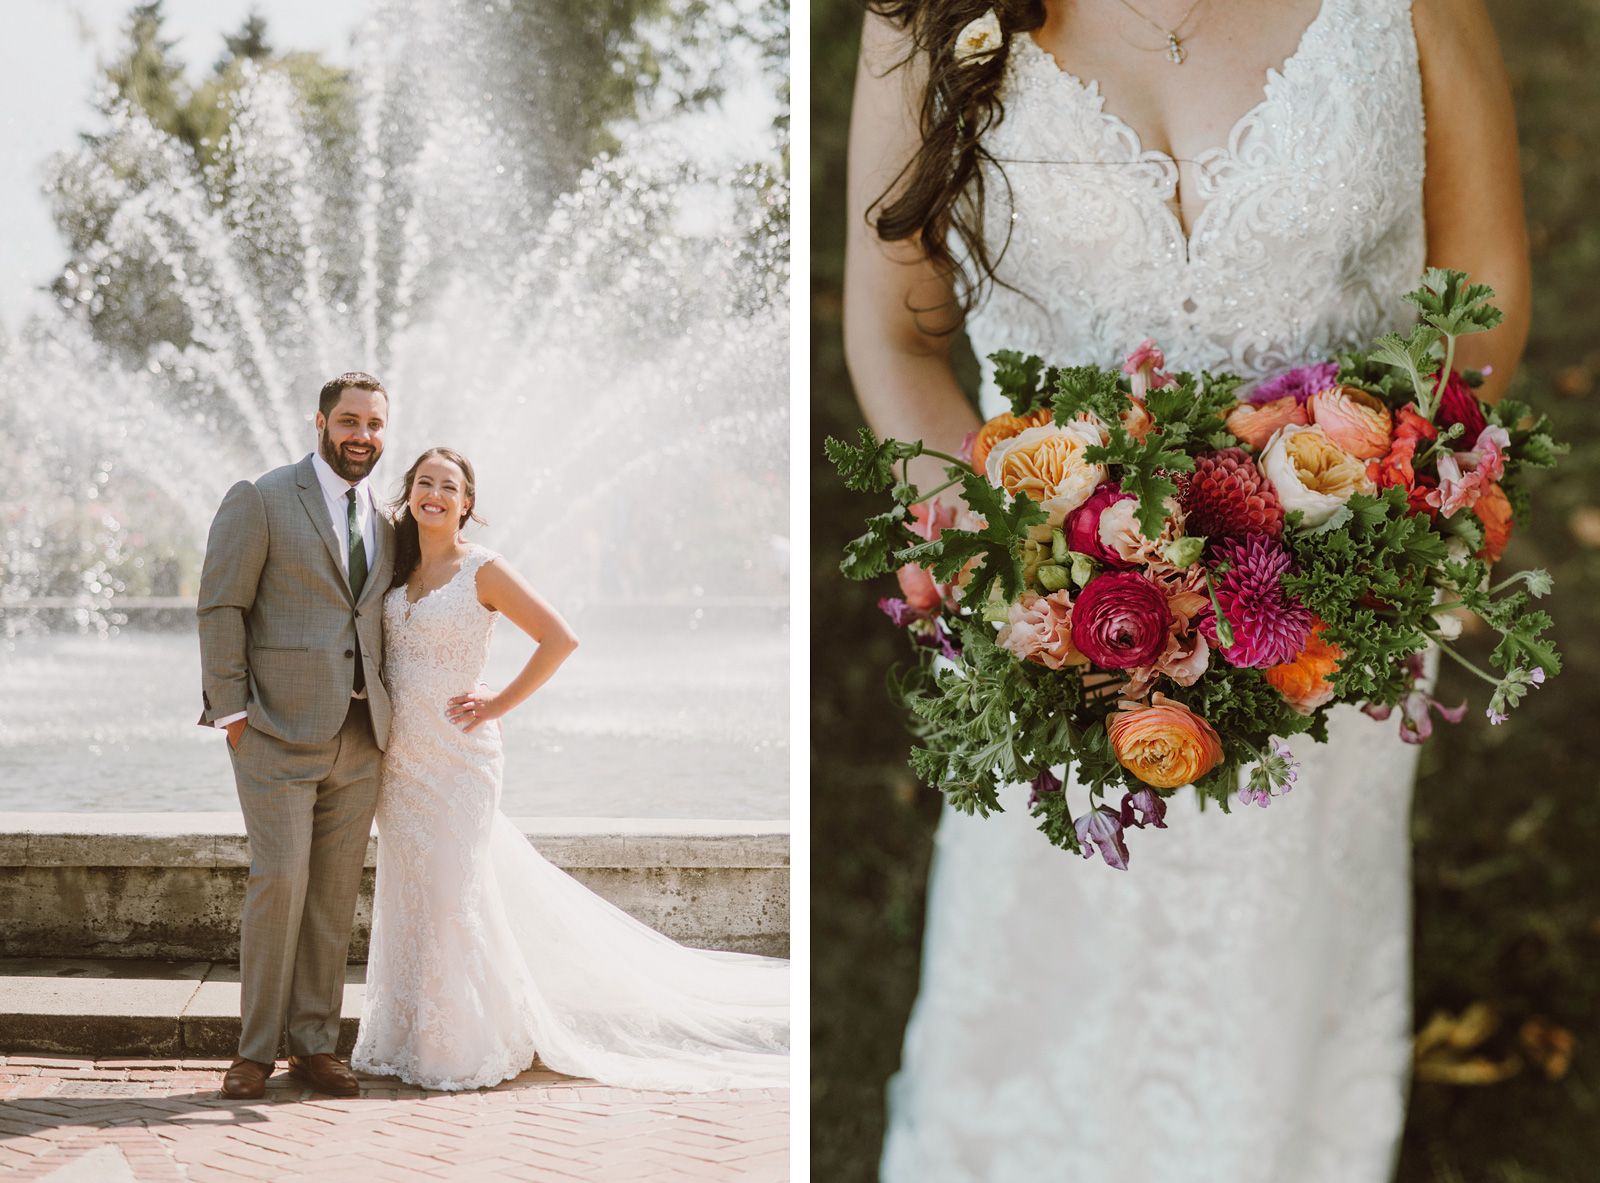 Portraits of Bride and Groom in the Peninsula Park Rose Garden